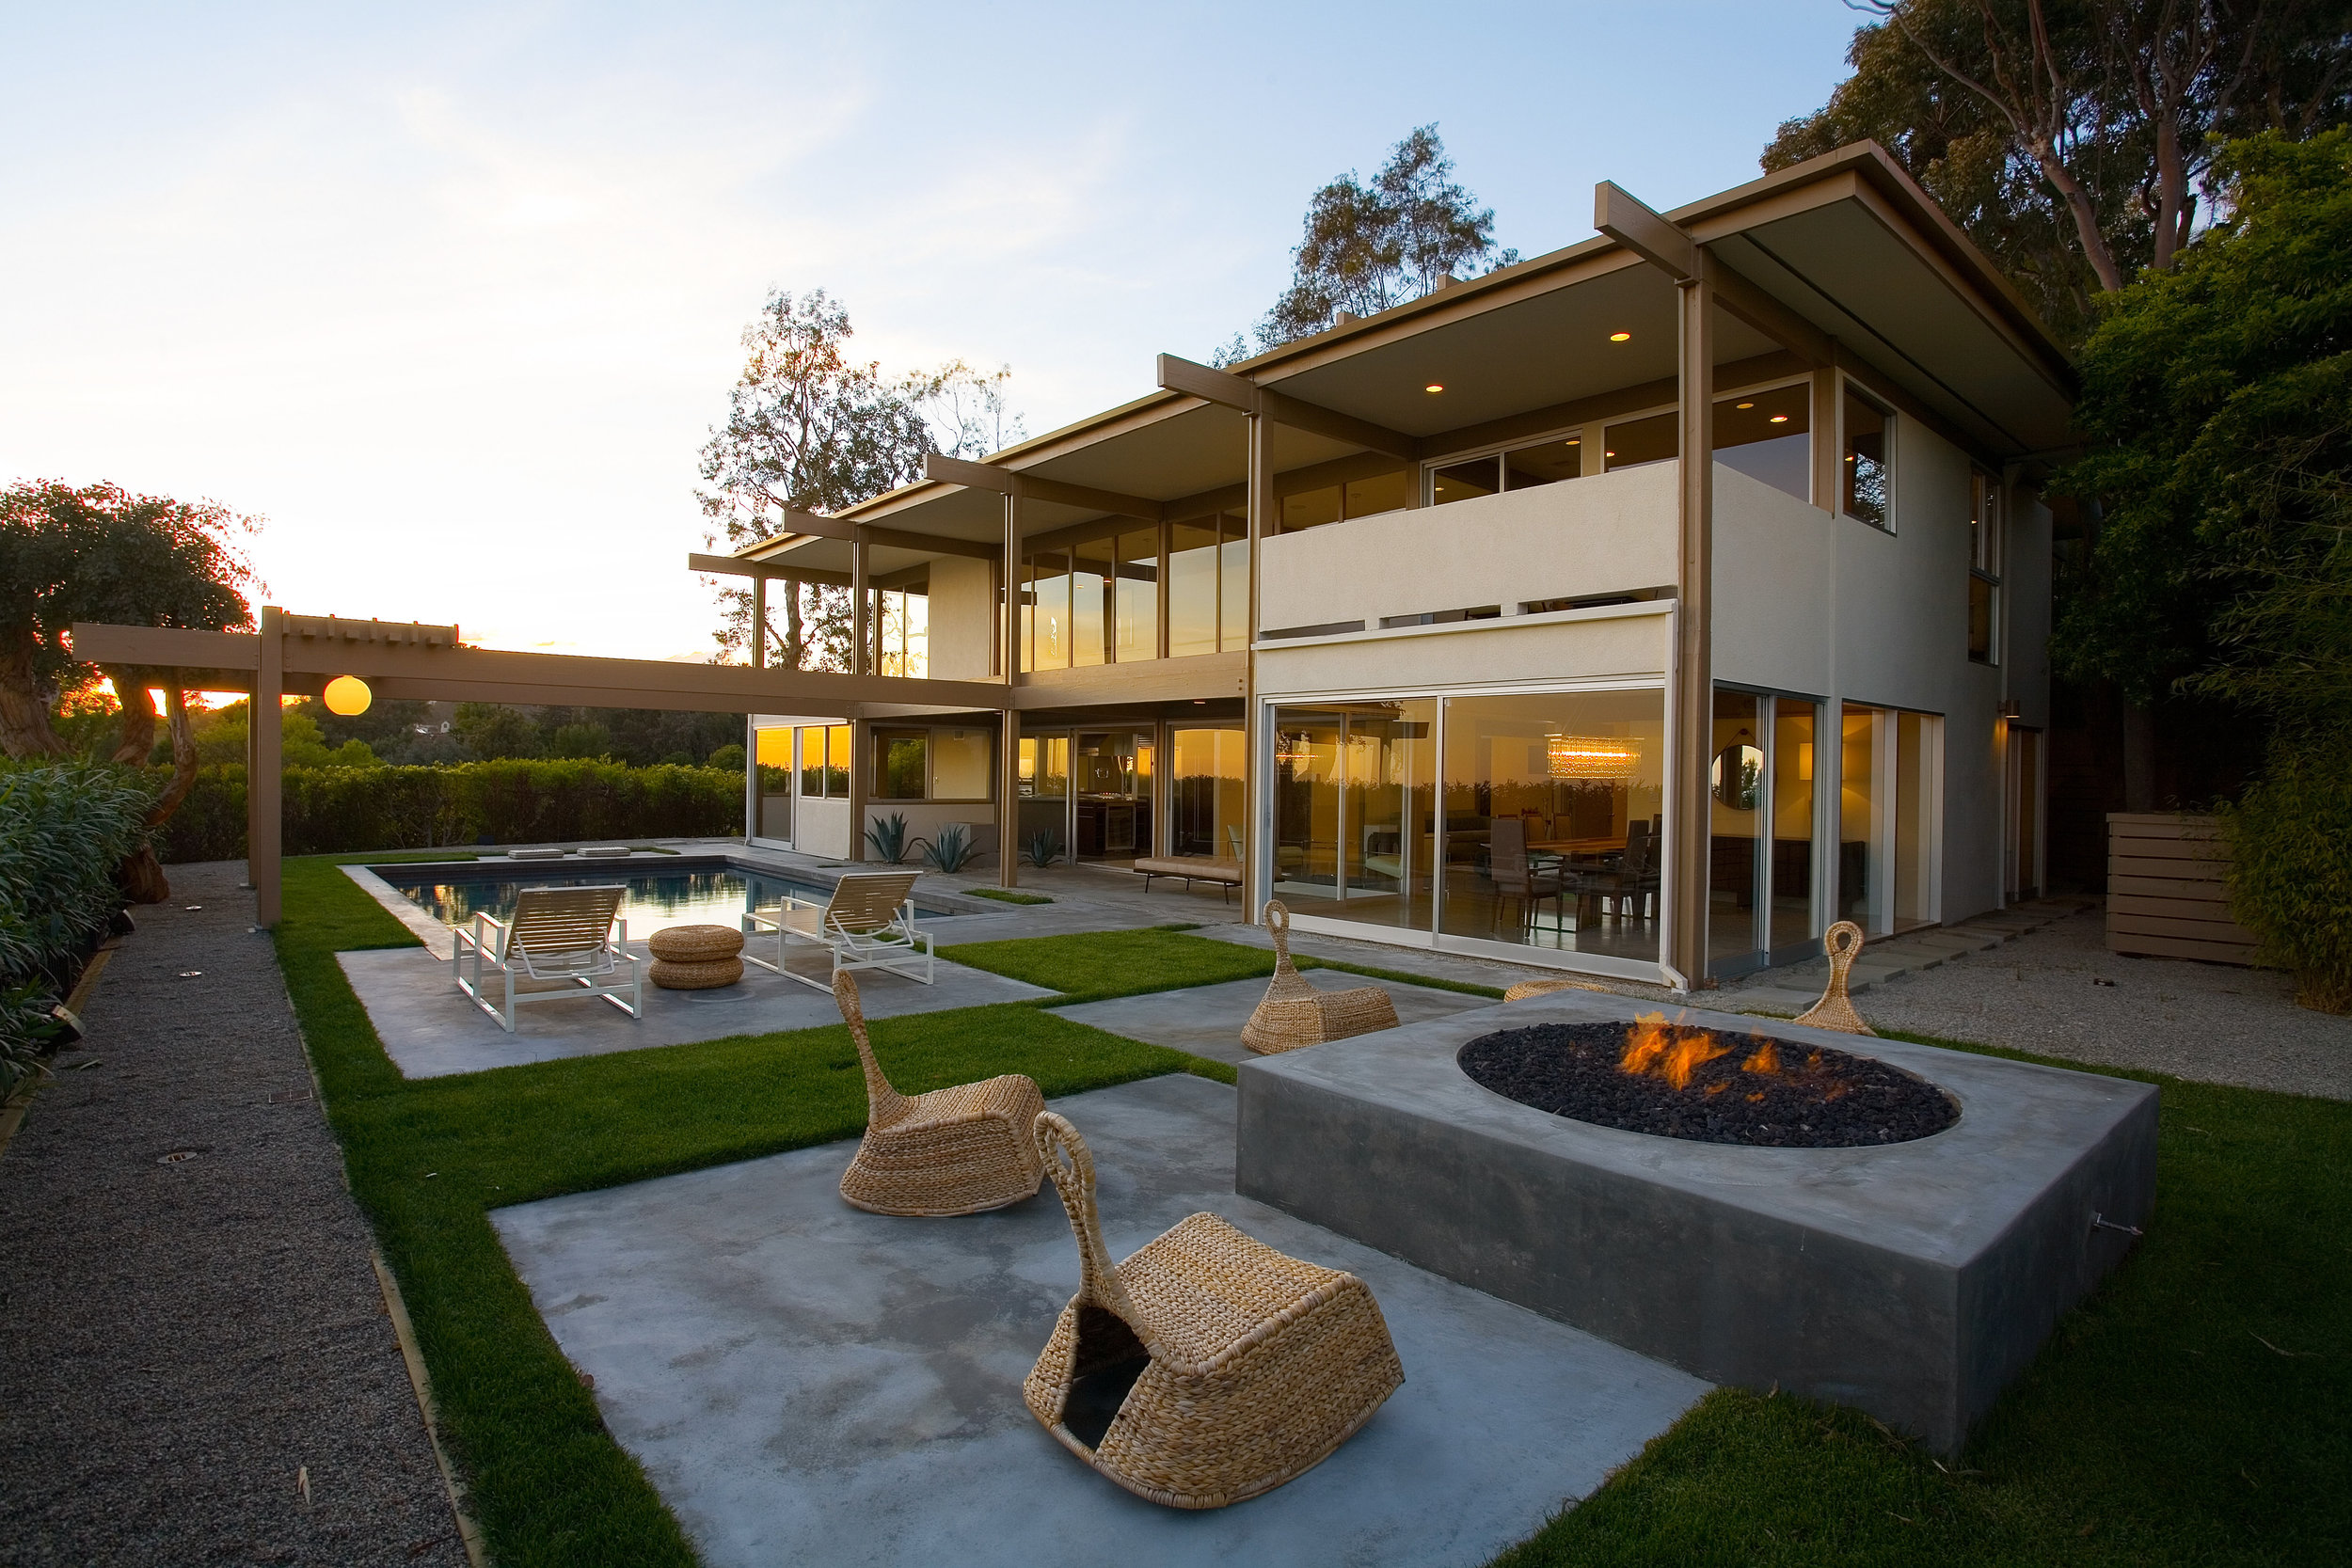 S.E.A.-Studio-Environmental-Architecture-David-Hertz-FAIA-Buff-Hensman-Bel-Air-historic-preservation-sustainable-regenerative-restorative-design-remodel-midcentury-modern-case-study-house-vintage-residential-contemporary-addition-hollywood-hills-yard.jpg